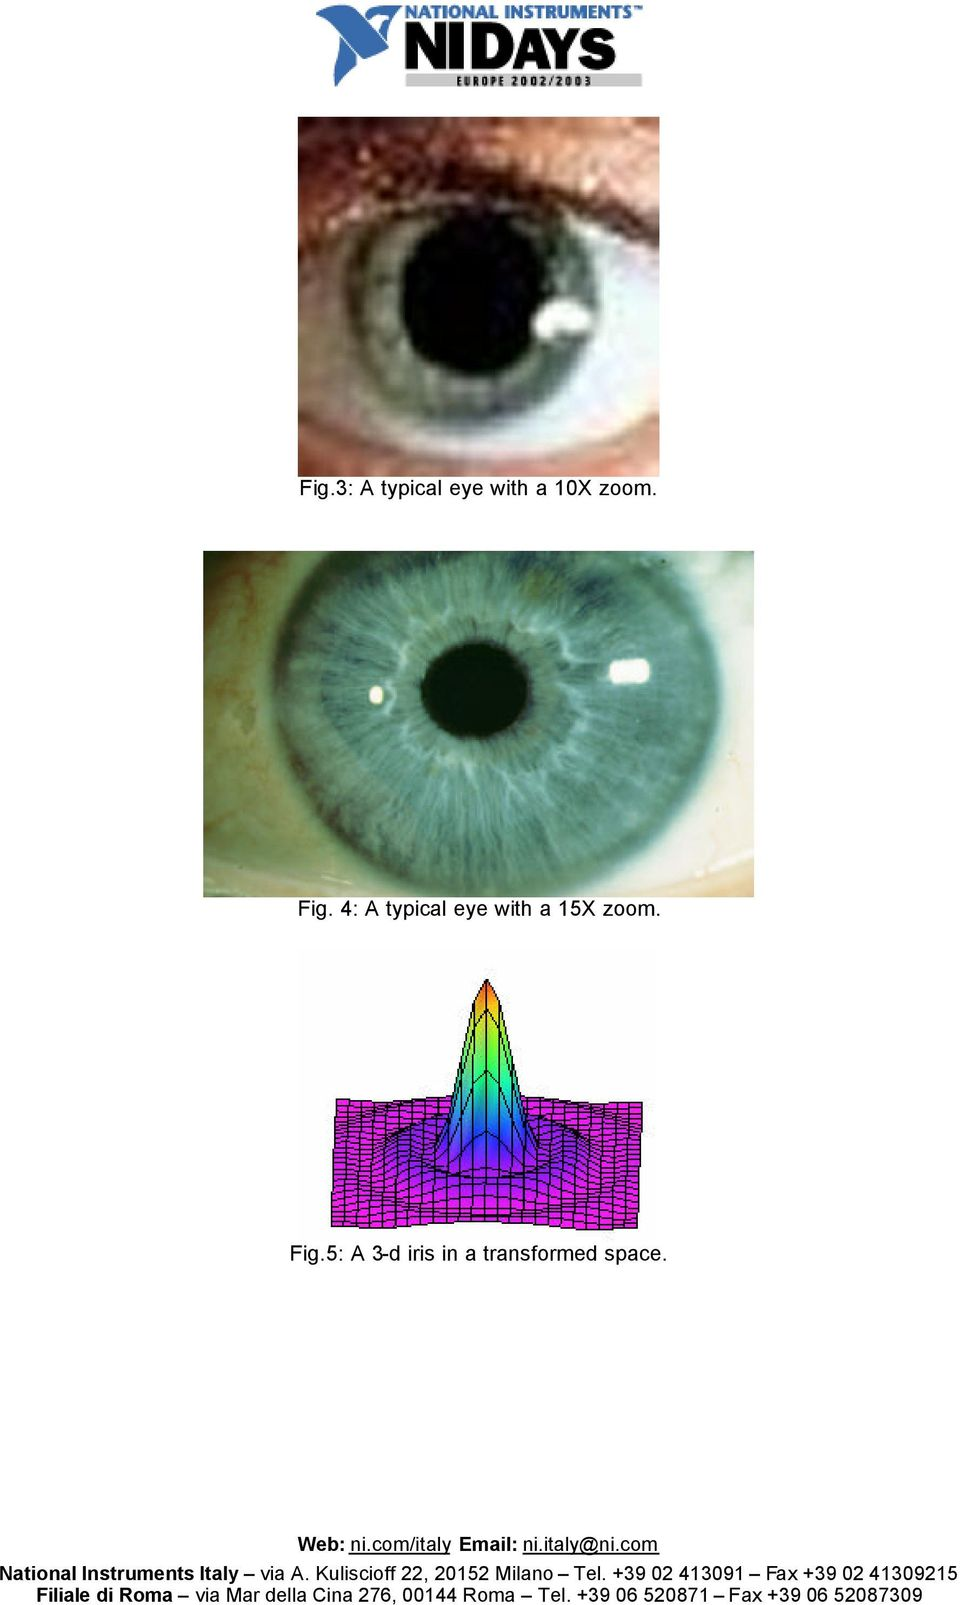 4: A typical eye with a 15X